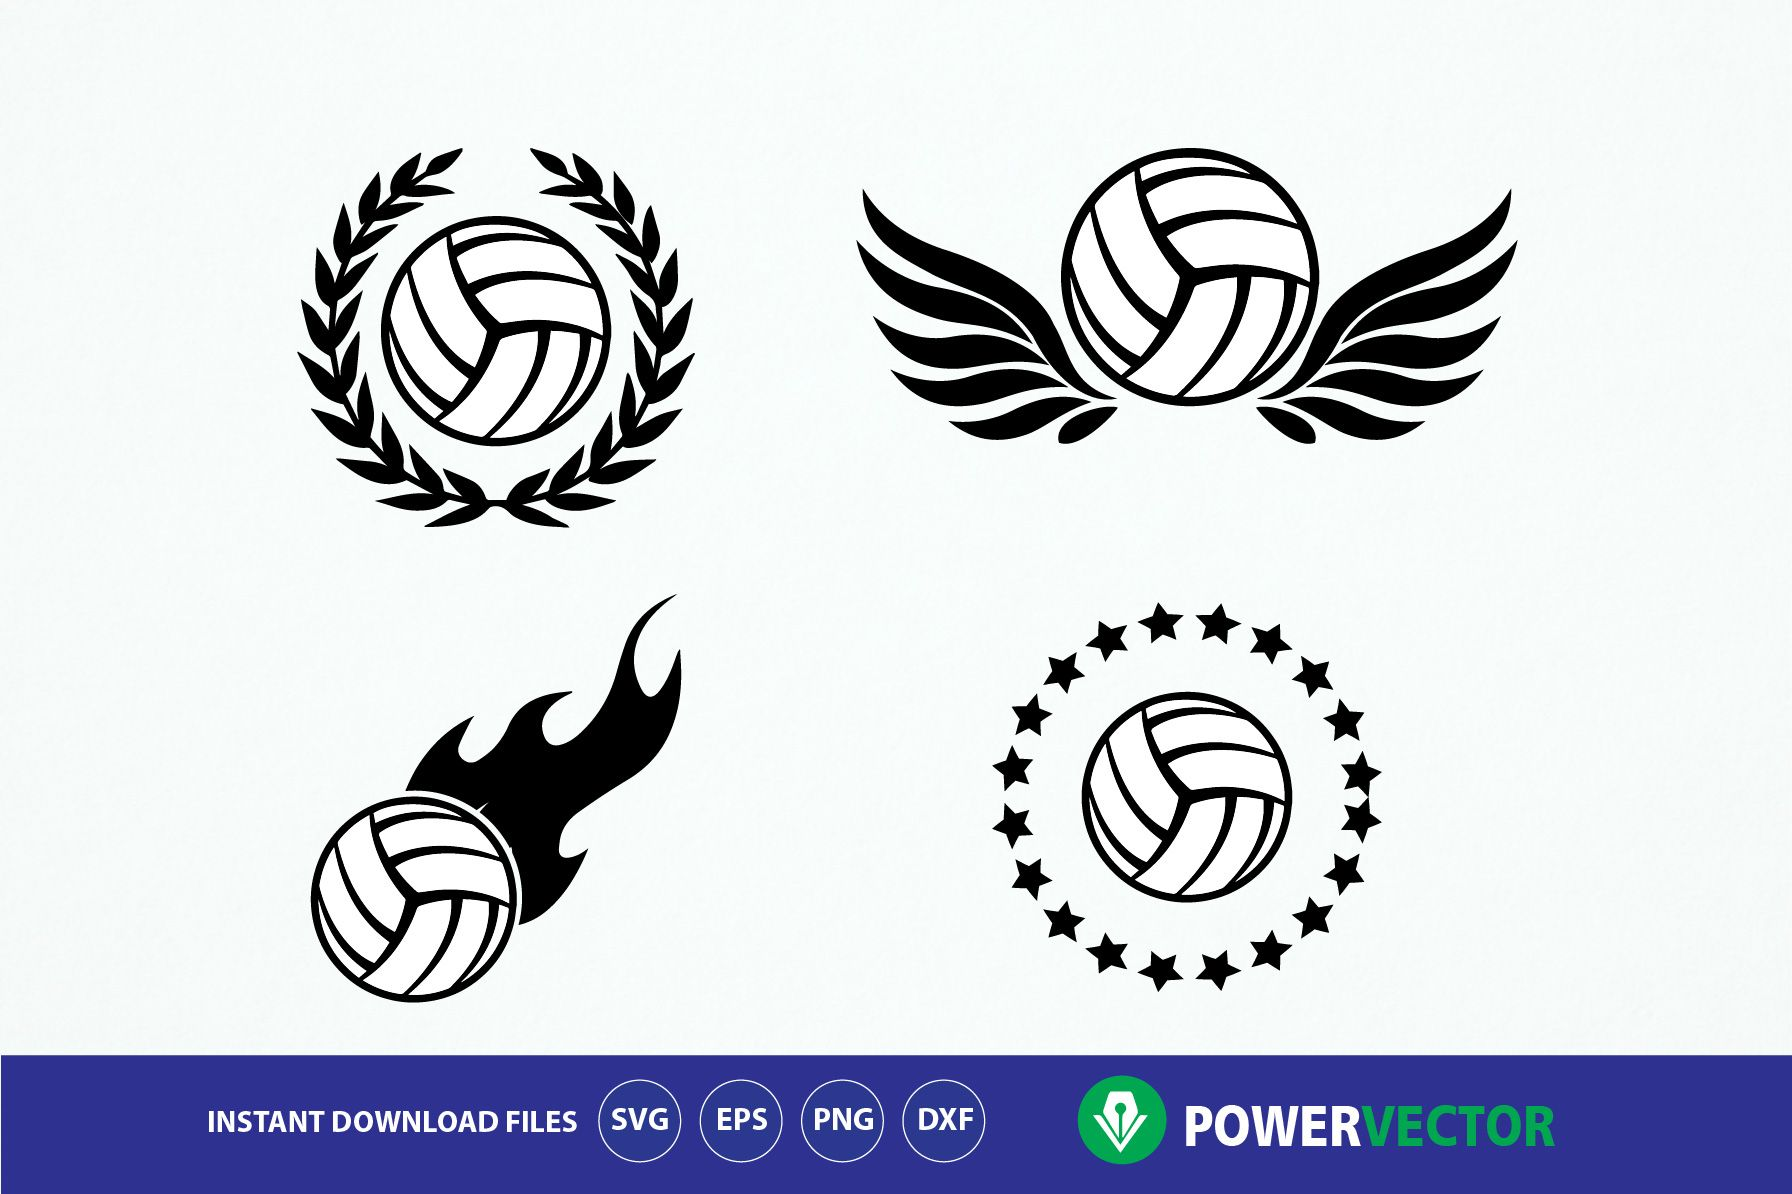 Volleyball Team Logo Emblem Design Svg Dxf Eps Png Files Graphic By Powervector Creative Fabrica Emblem Logo Volleyball Team Team Logo